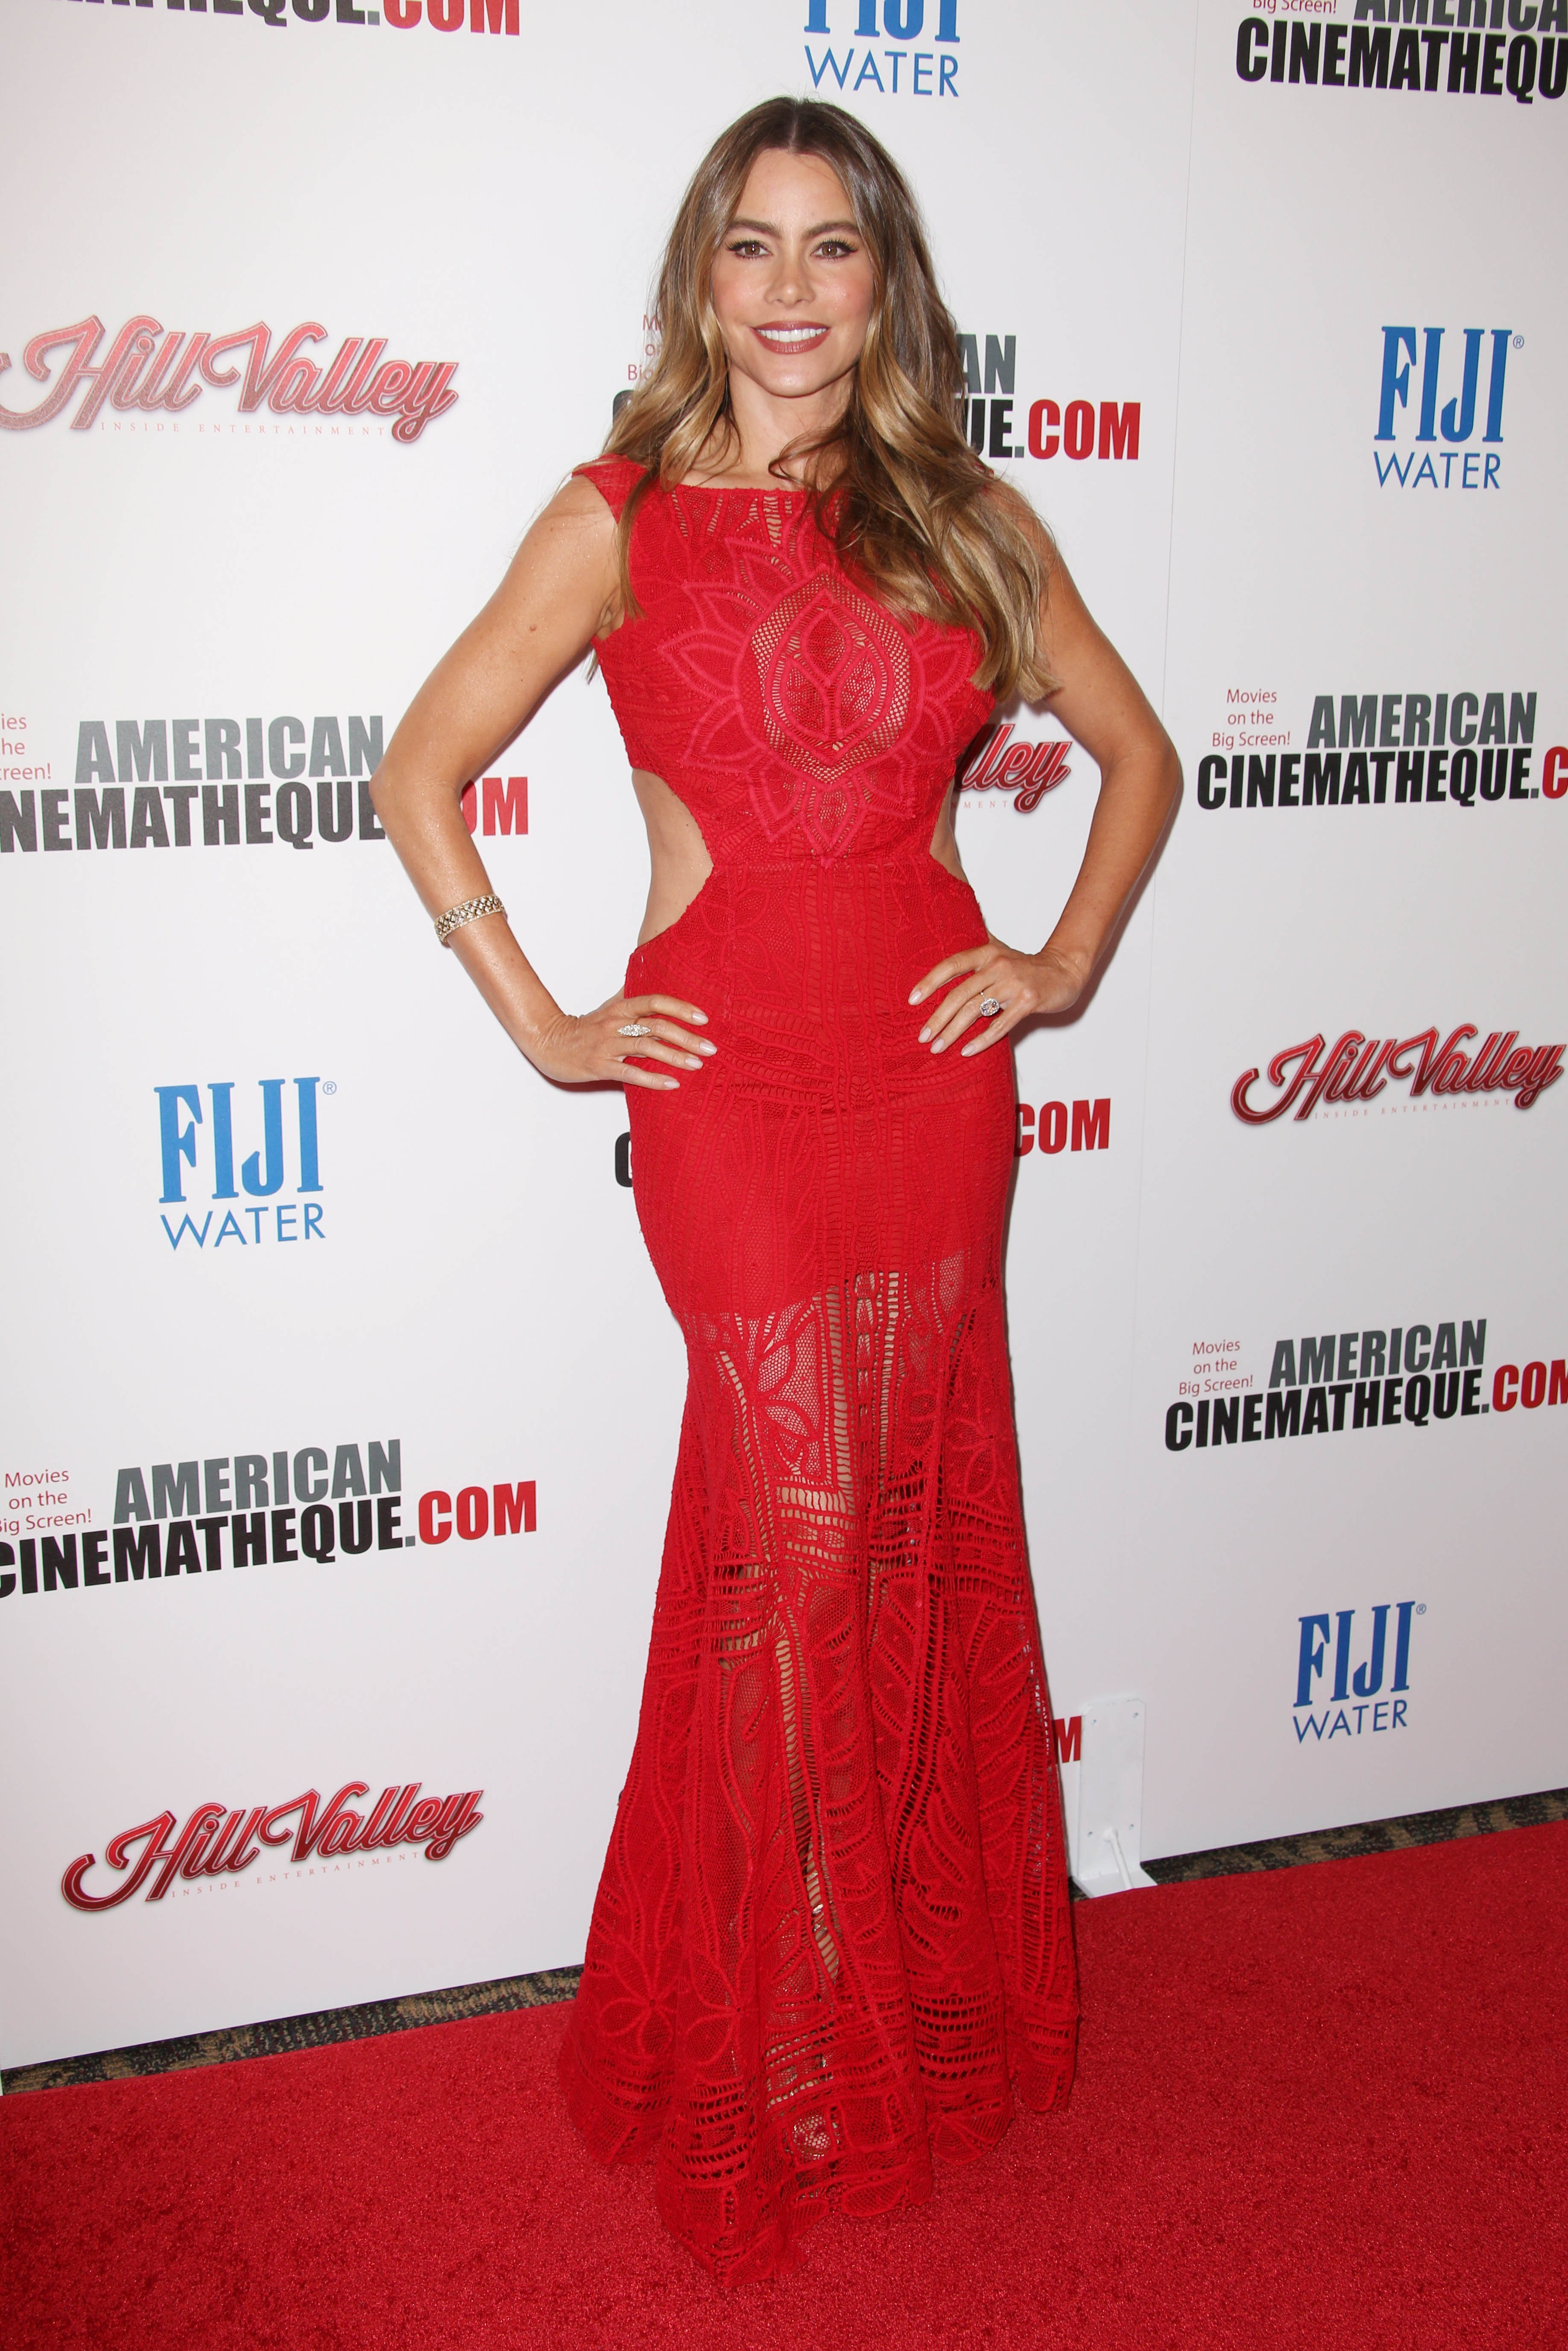 Sofia Vergara on her 40s: 'You can look beautiful but in a different way'